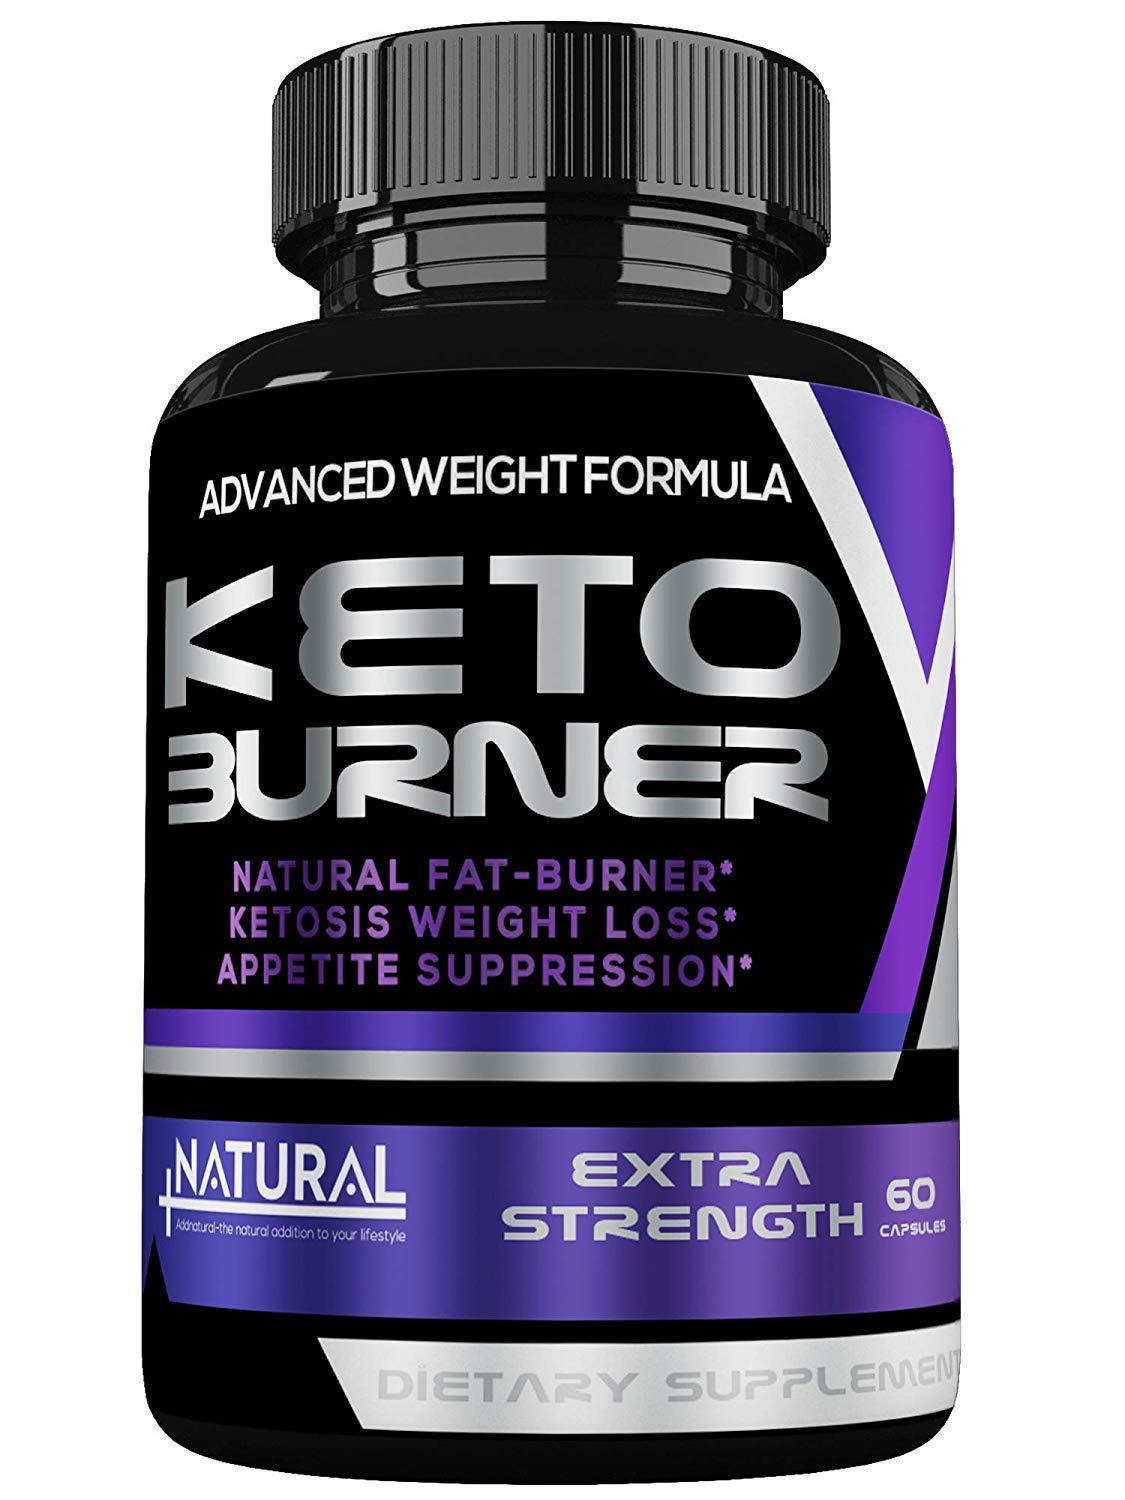 Thermogenic Keto Fat Burners for Men/Women - Best Keto Diet Weight Loss Pills - Appetite Suppressant- Burns Fat Fast - Metabolism/Energy Booster by Addnatural